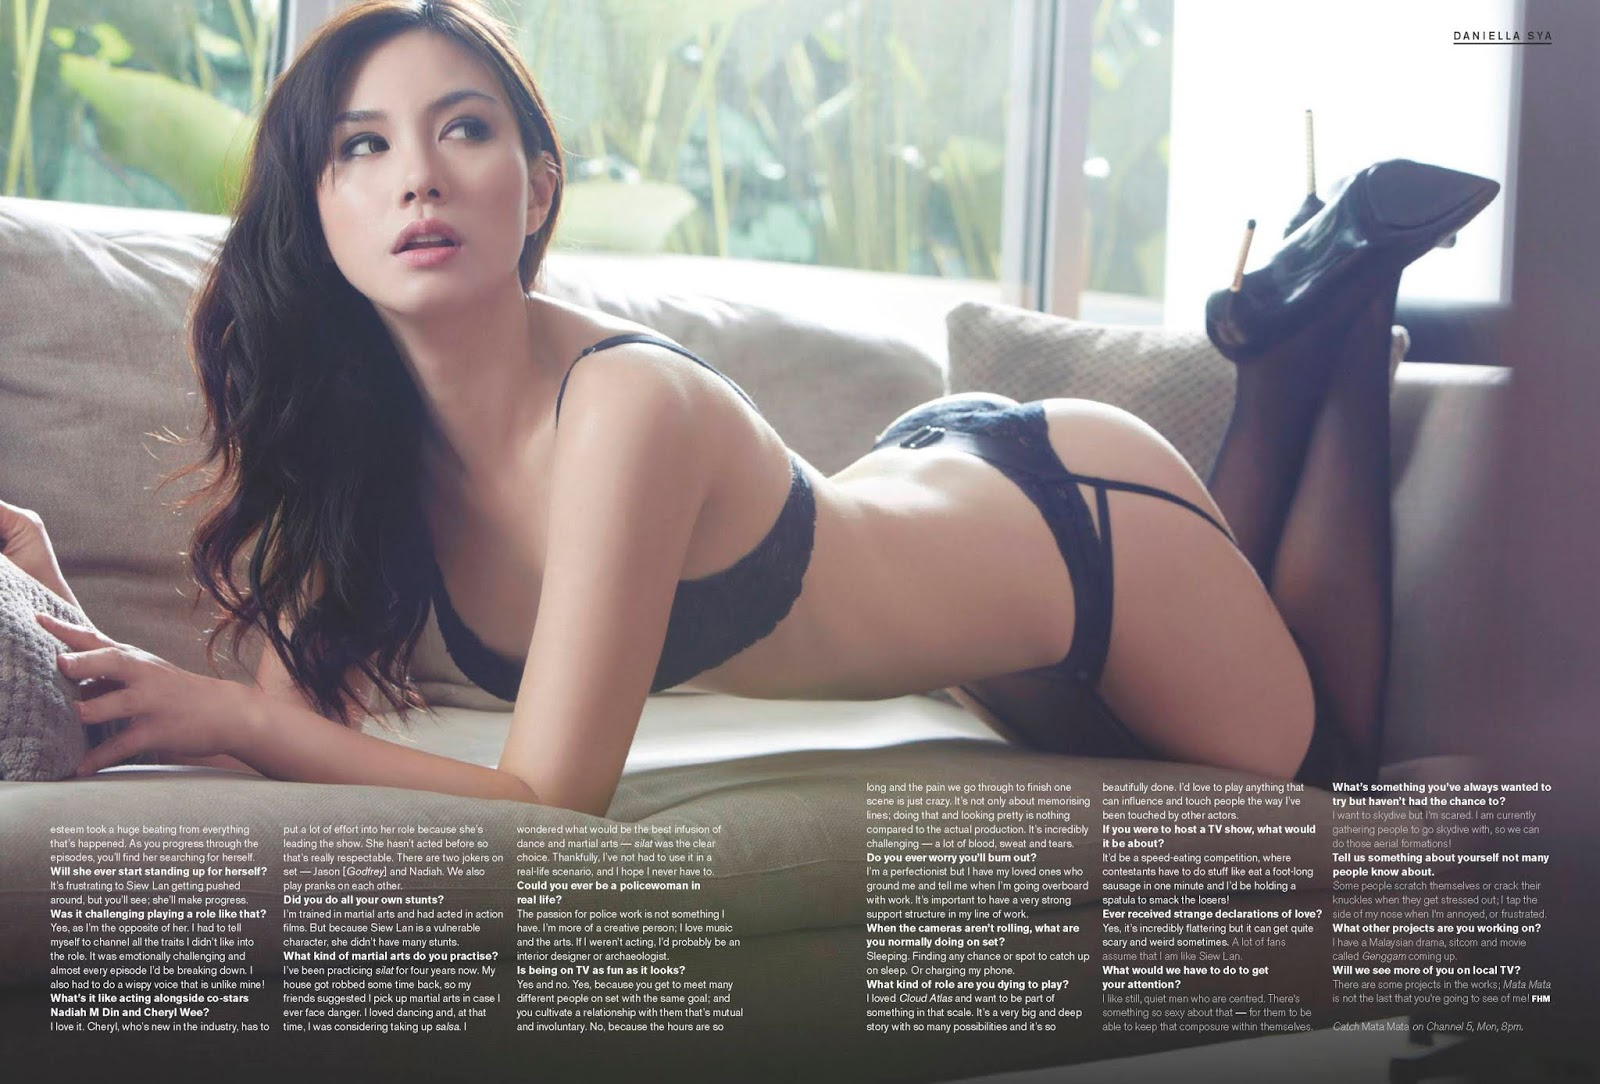 See and save as singaporean fhm model jenelle ong nude lesbian pics leaked porn pict